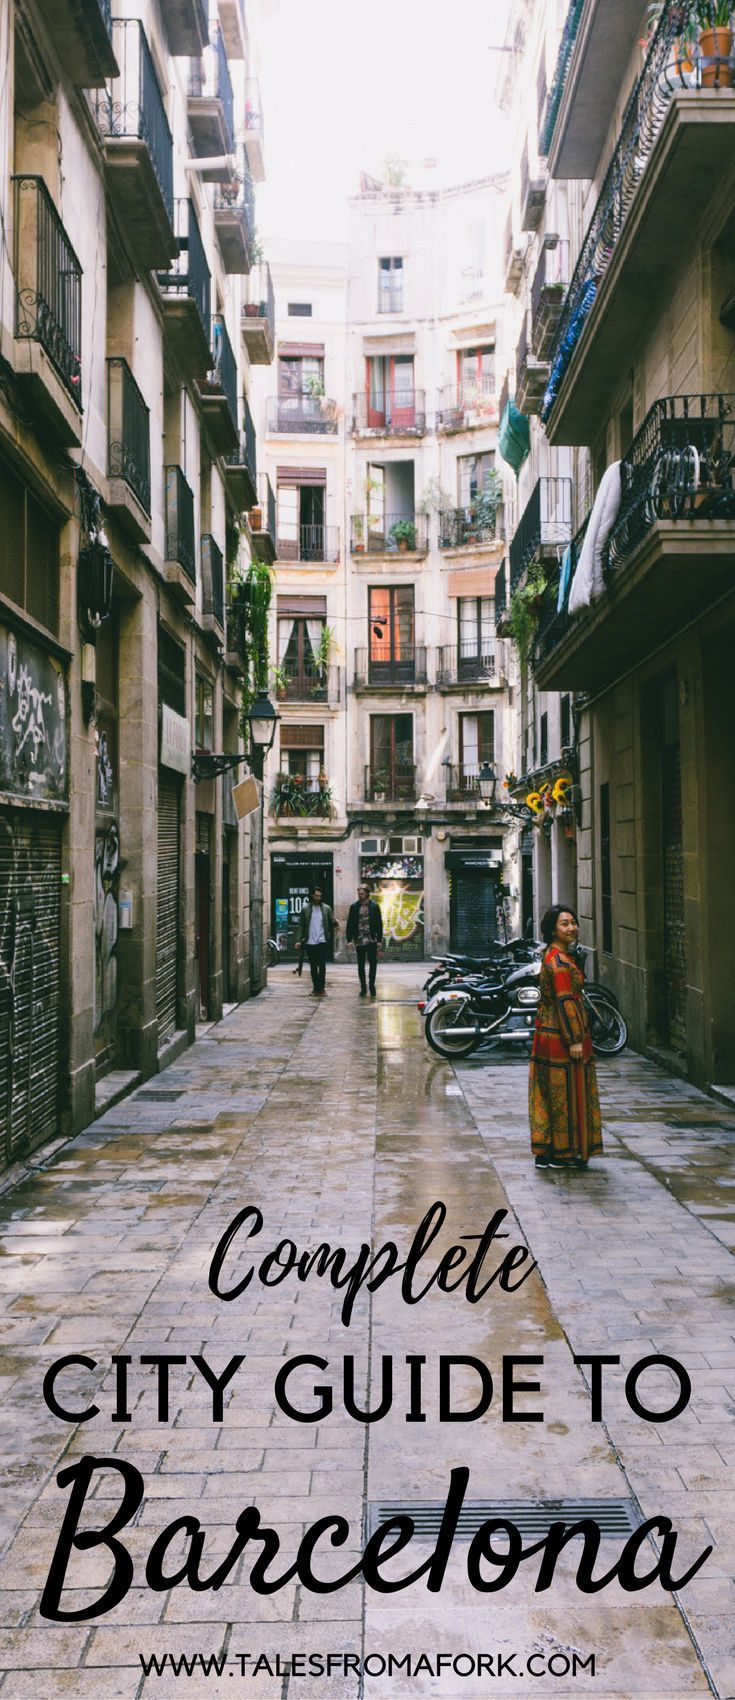 Barcelona is a must-see city if you love stunning Art Nouveau architecture, delicious food, and relaxing by the beach. Check out this full city guide to Barcelona including how to get around, where to stay, where to eat, what to do, and so much more!